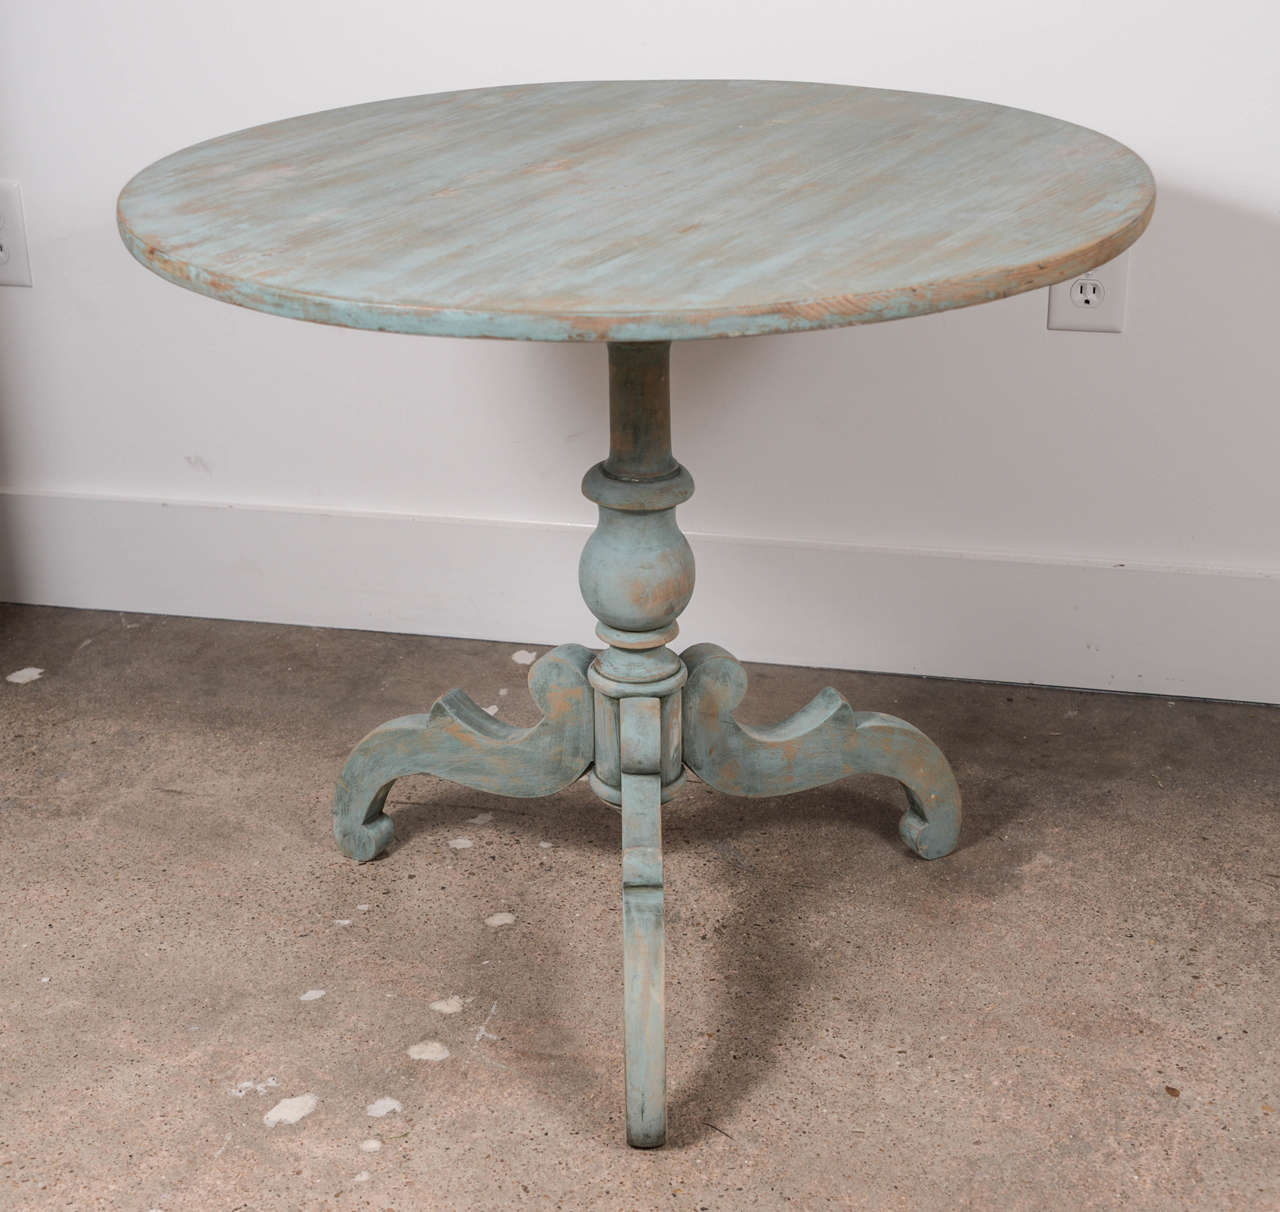 Decorative blue painted 19th century tilt-top pedestal table with a turned base supported by 3 scrolled feet.